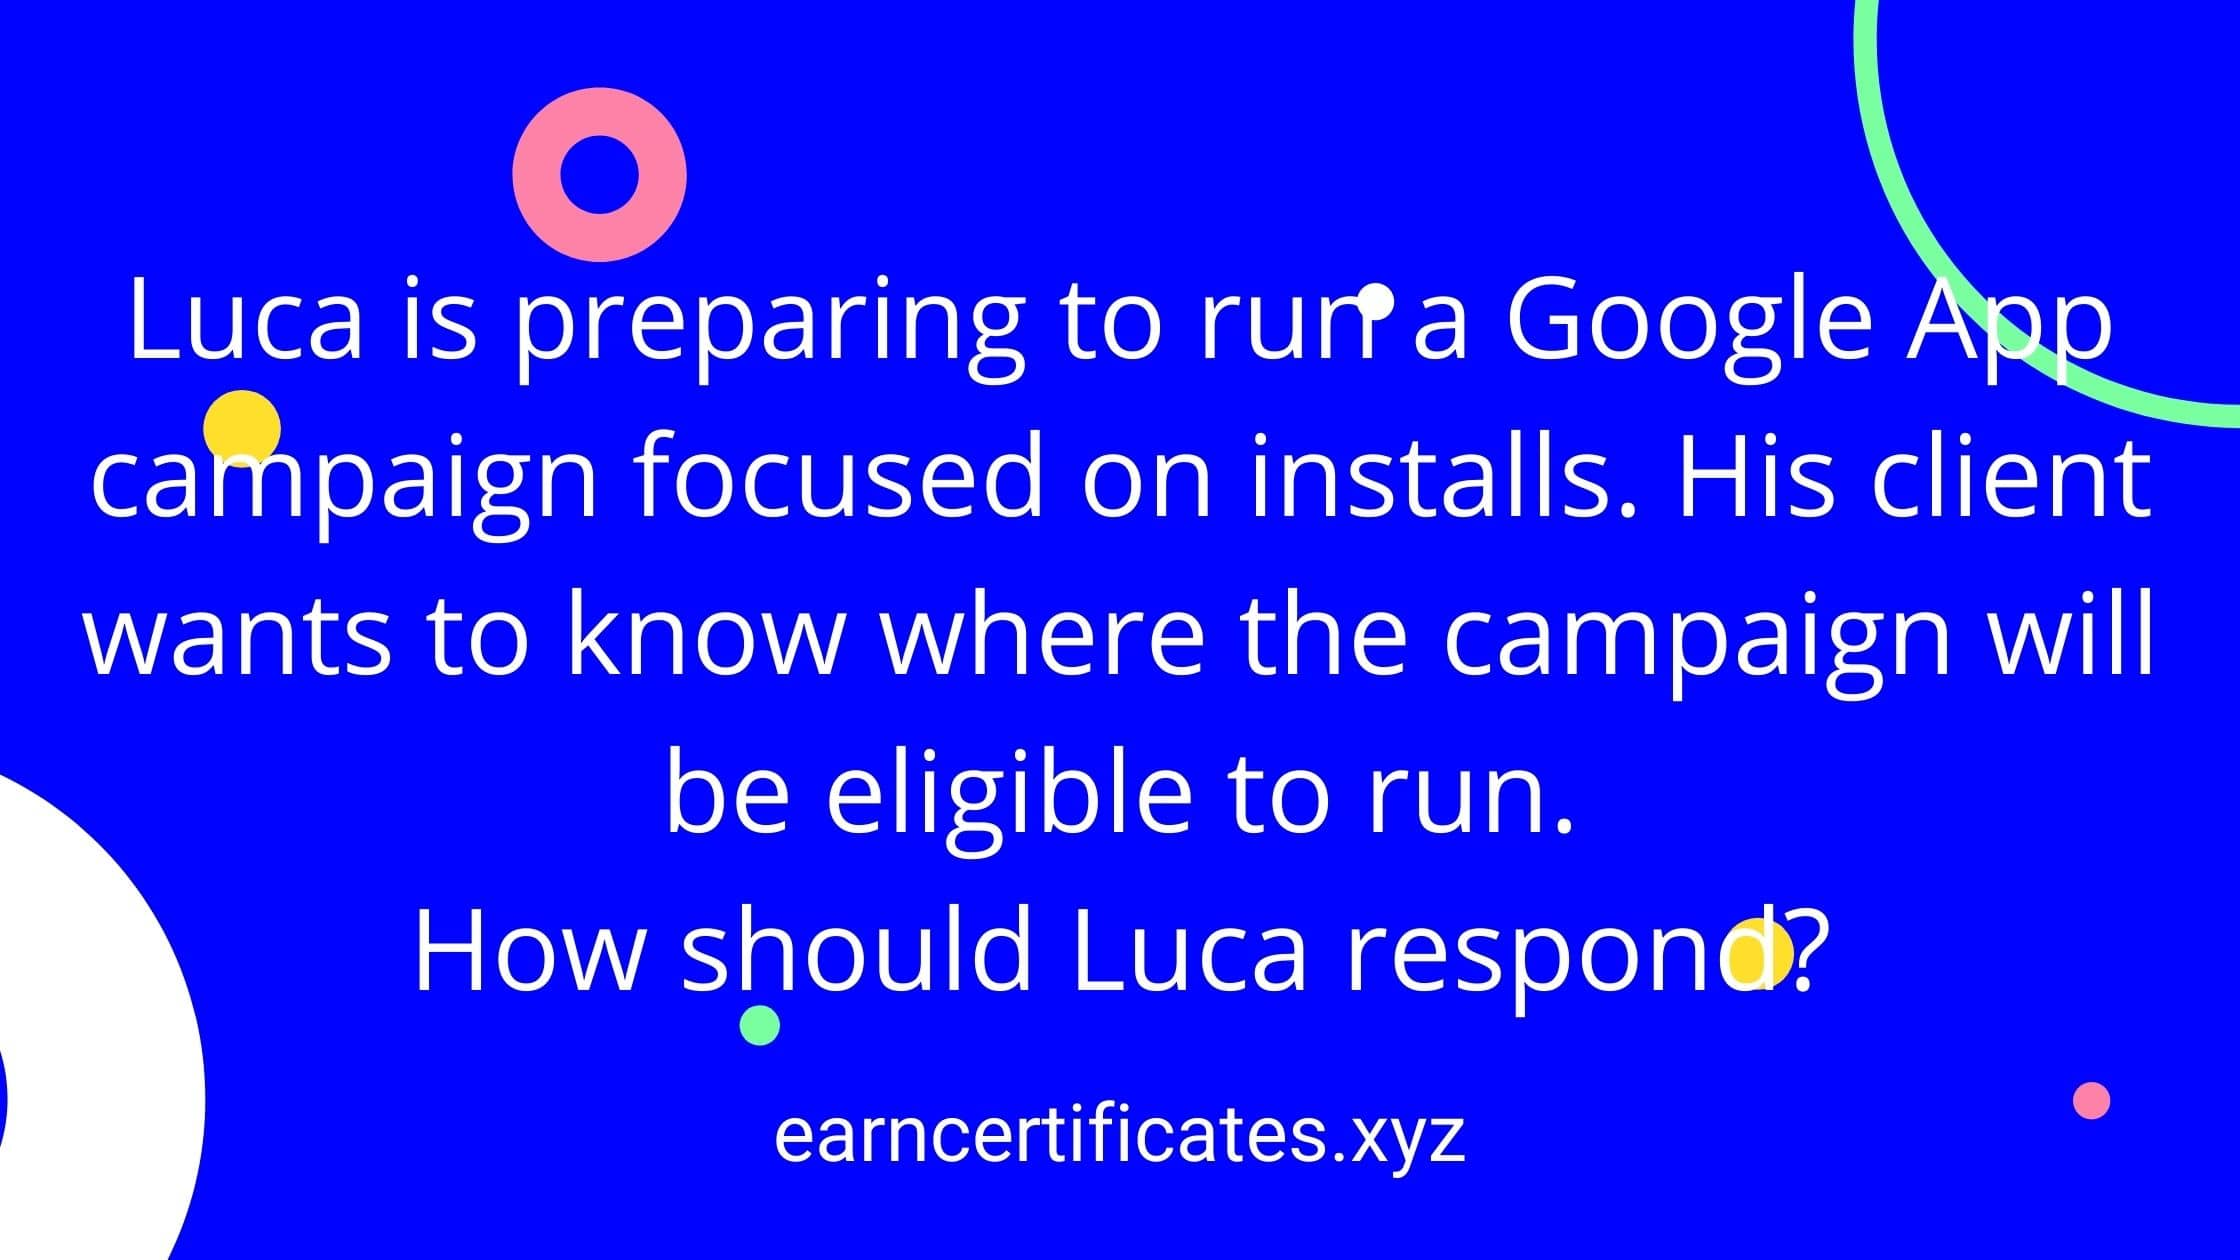 Luca is preparing to run a Google App campaign focused on installs. His client wants to know where the campaign will be eligible to run. How should Luca respond?